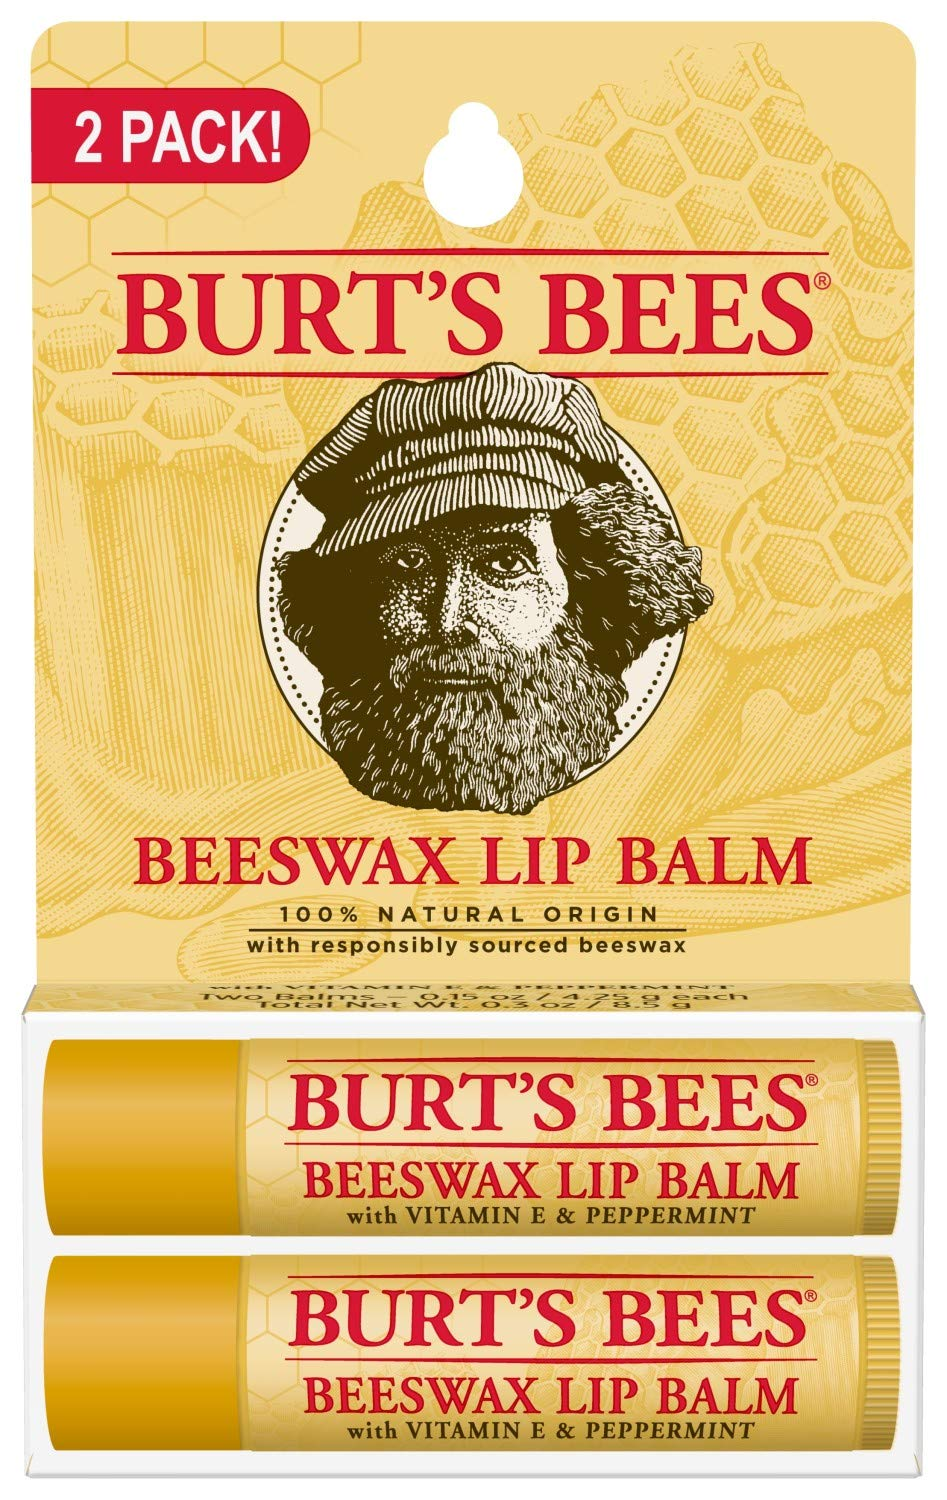 Burts Bees 100% Natural Origin Moisturizing Lip Balm, Beeswax, 2 Tubes in Blister Box (10792850776996) : Lip Balms And Moisturizers : Beauty